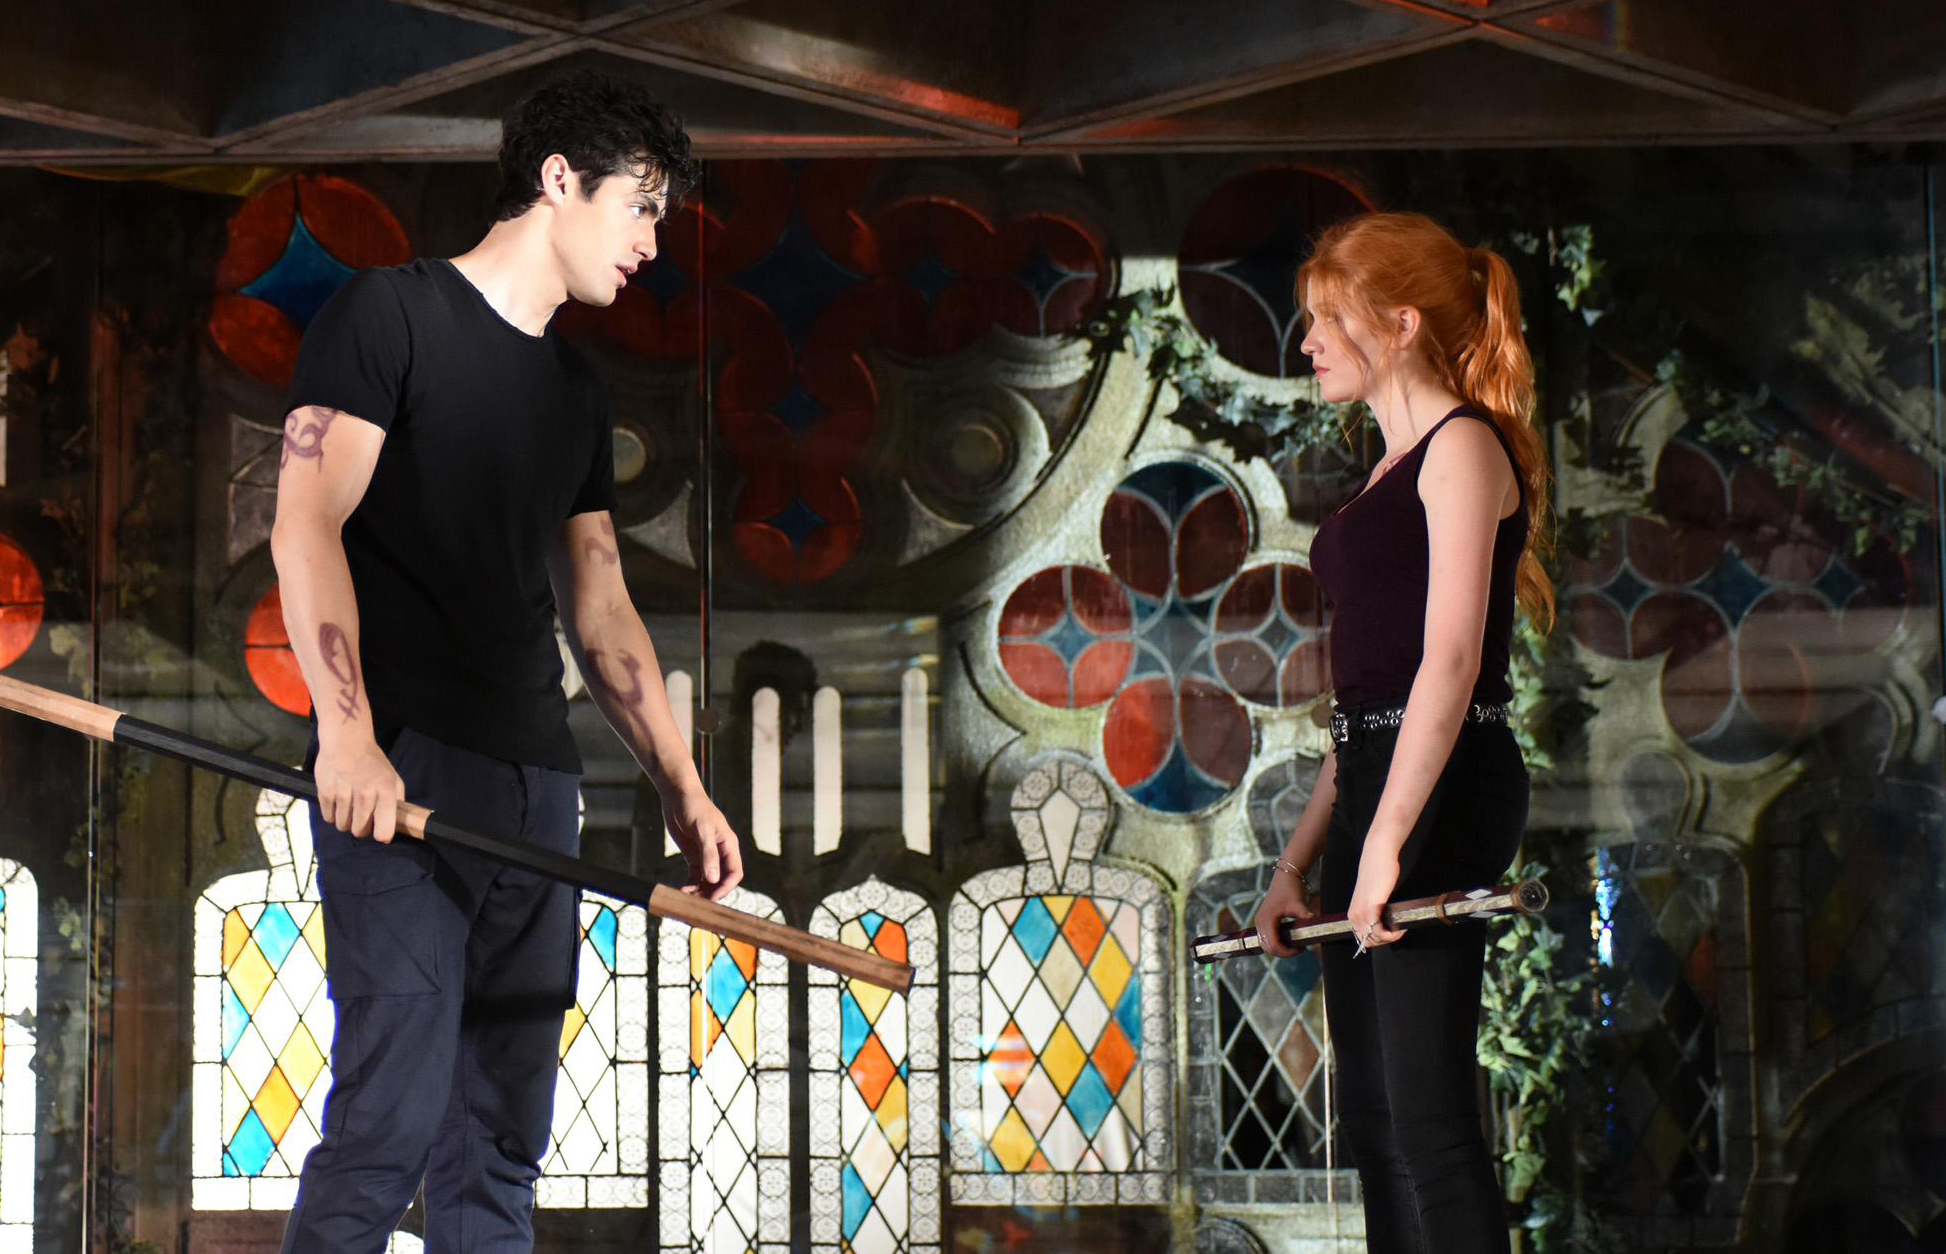 shadowhunters-season-1-episode-5-still-04